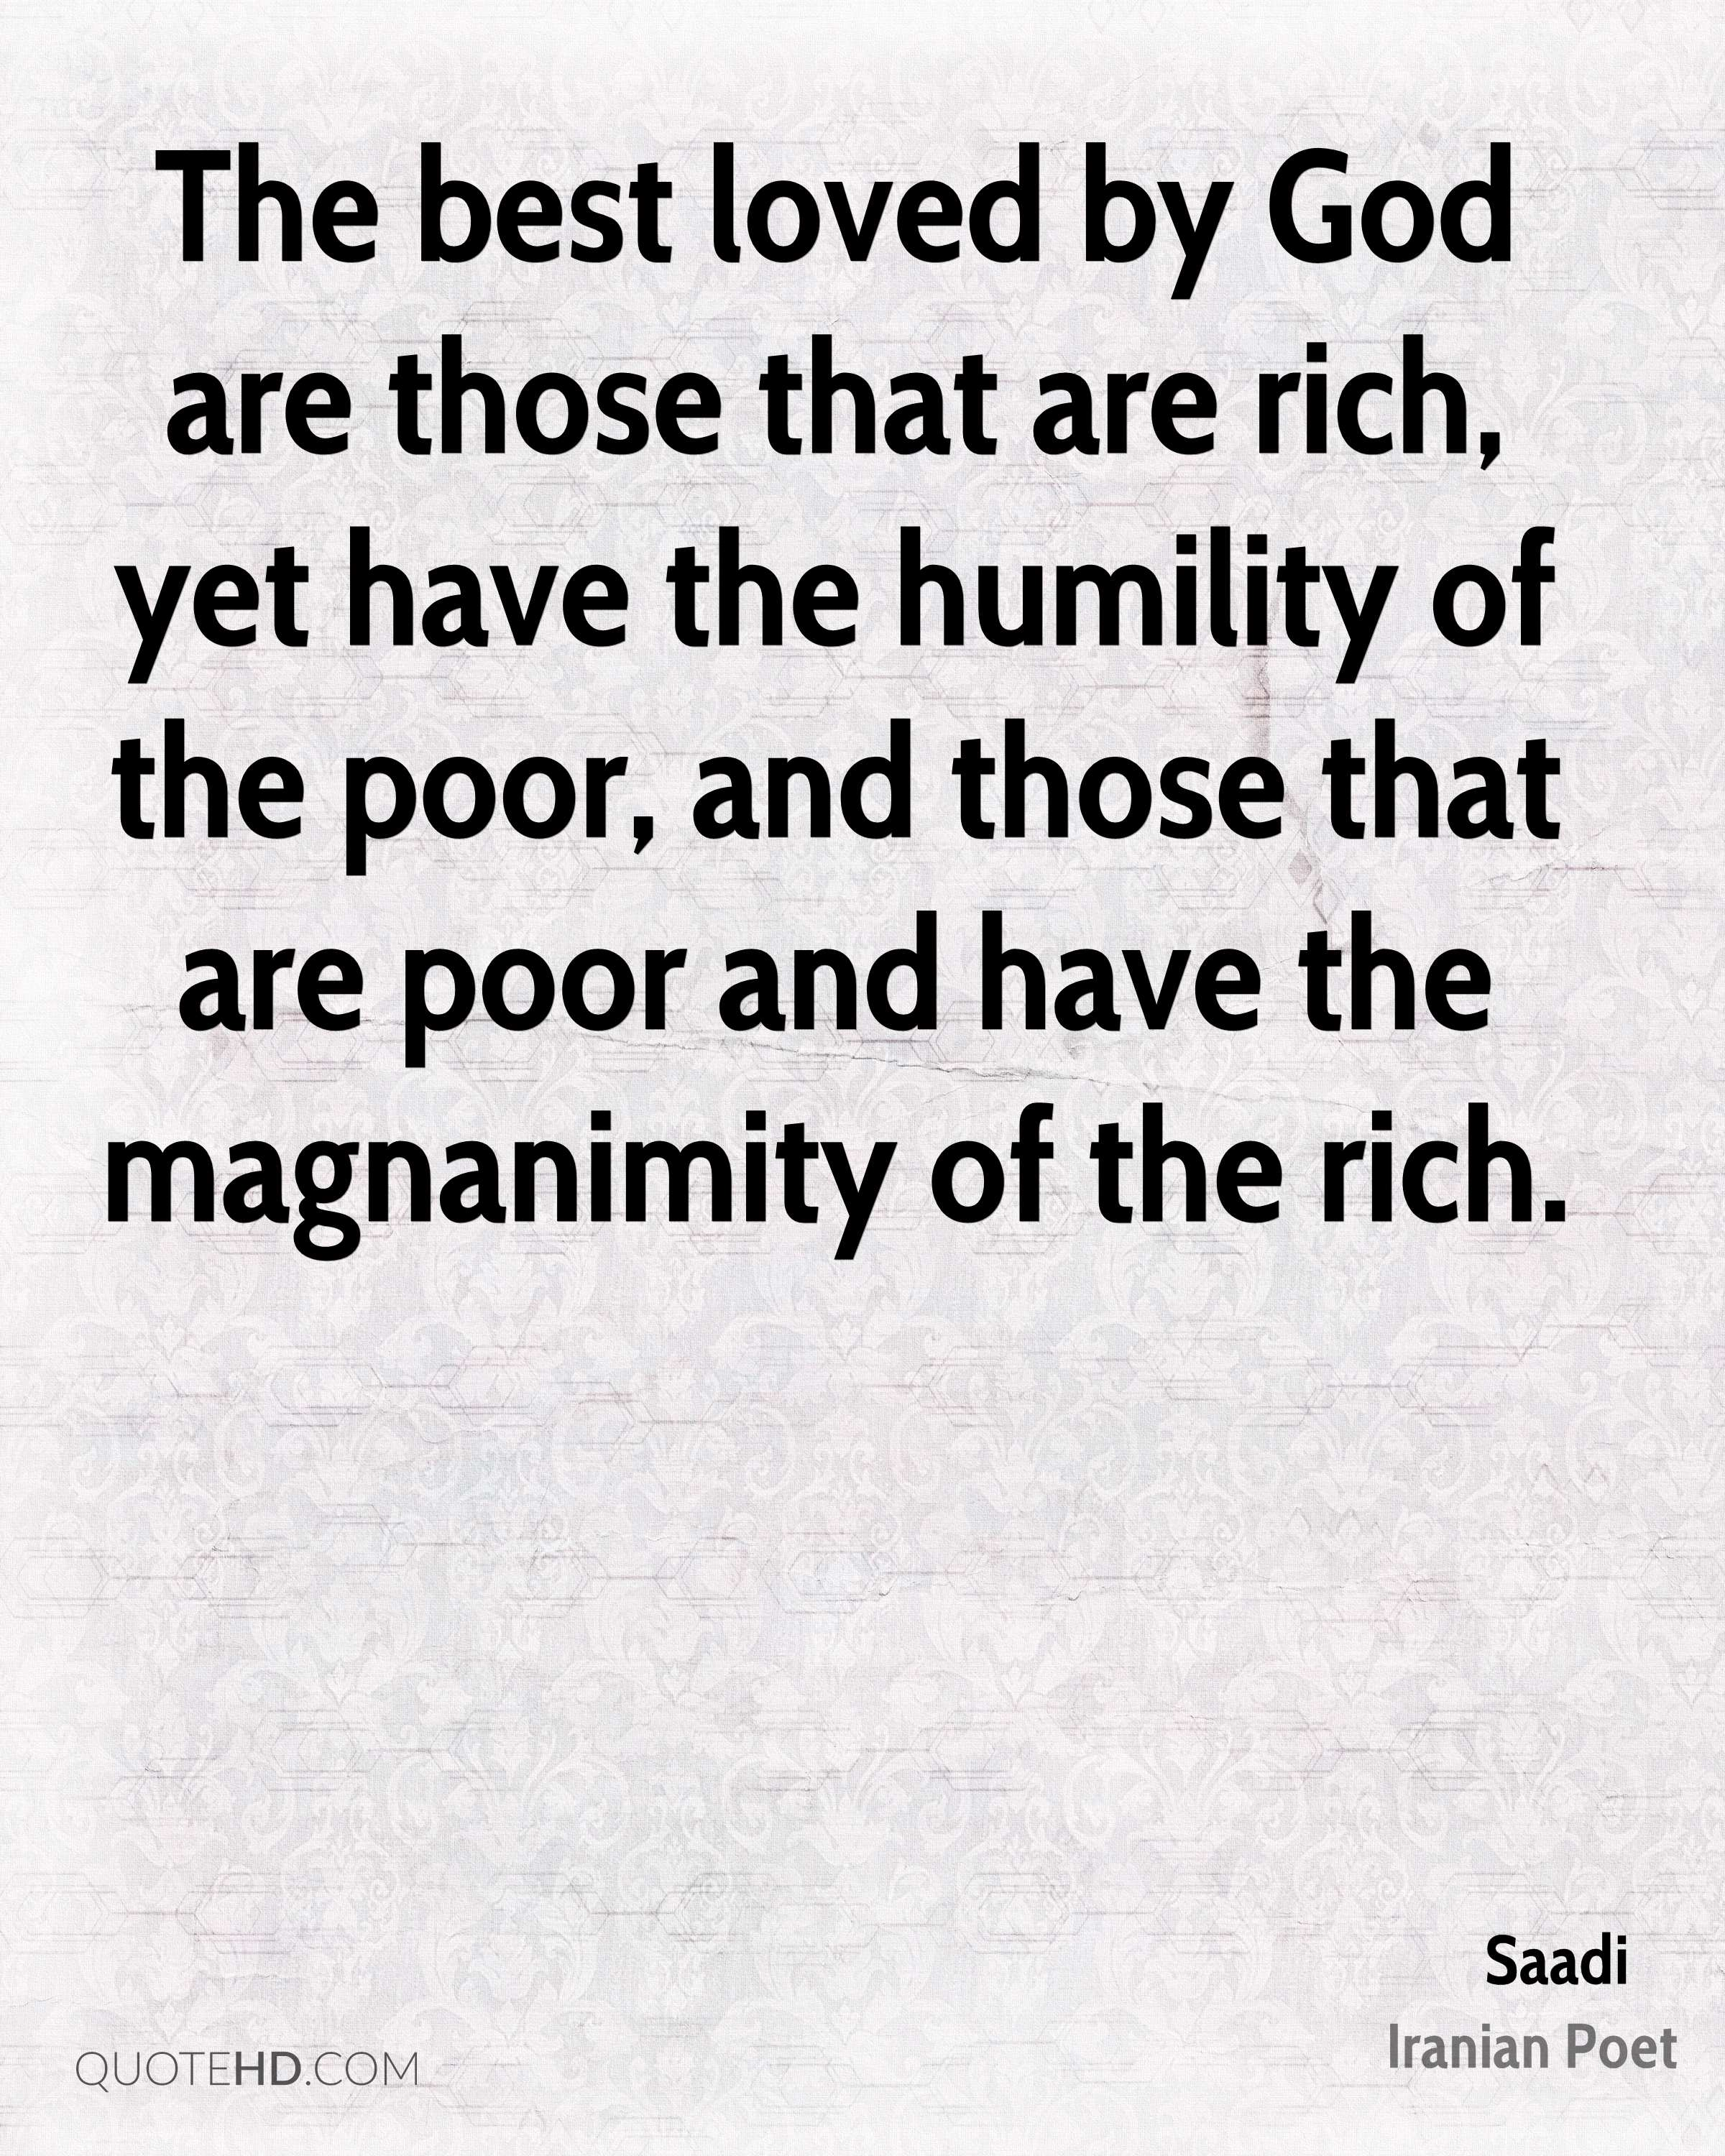 Quotes About The Rich And Poor: Saadi Quotes